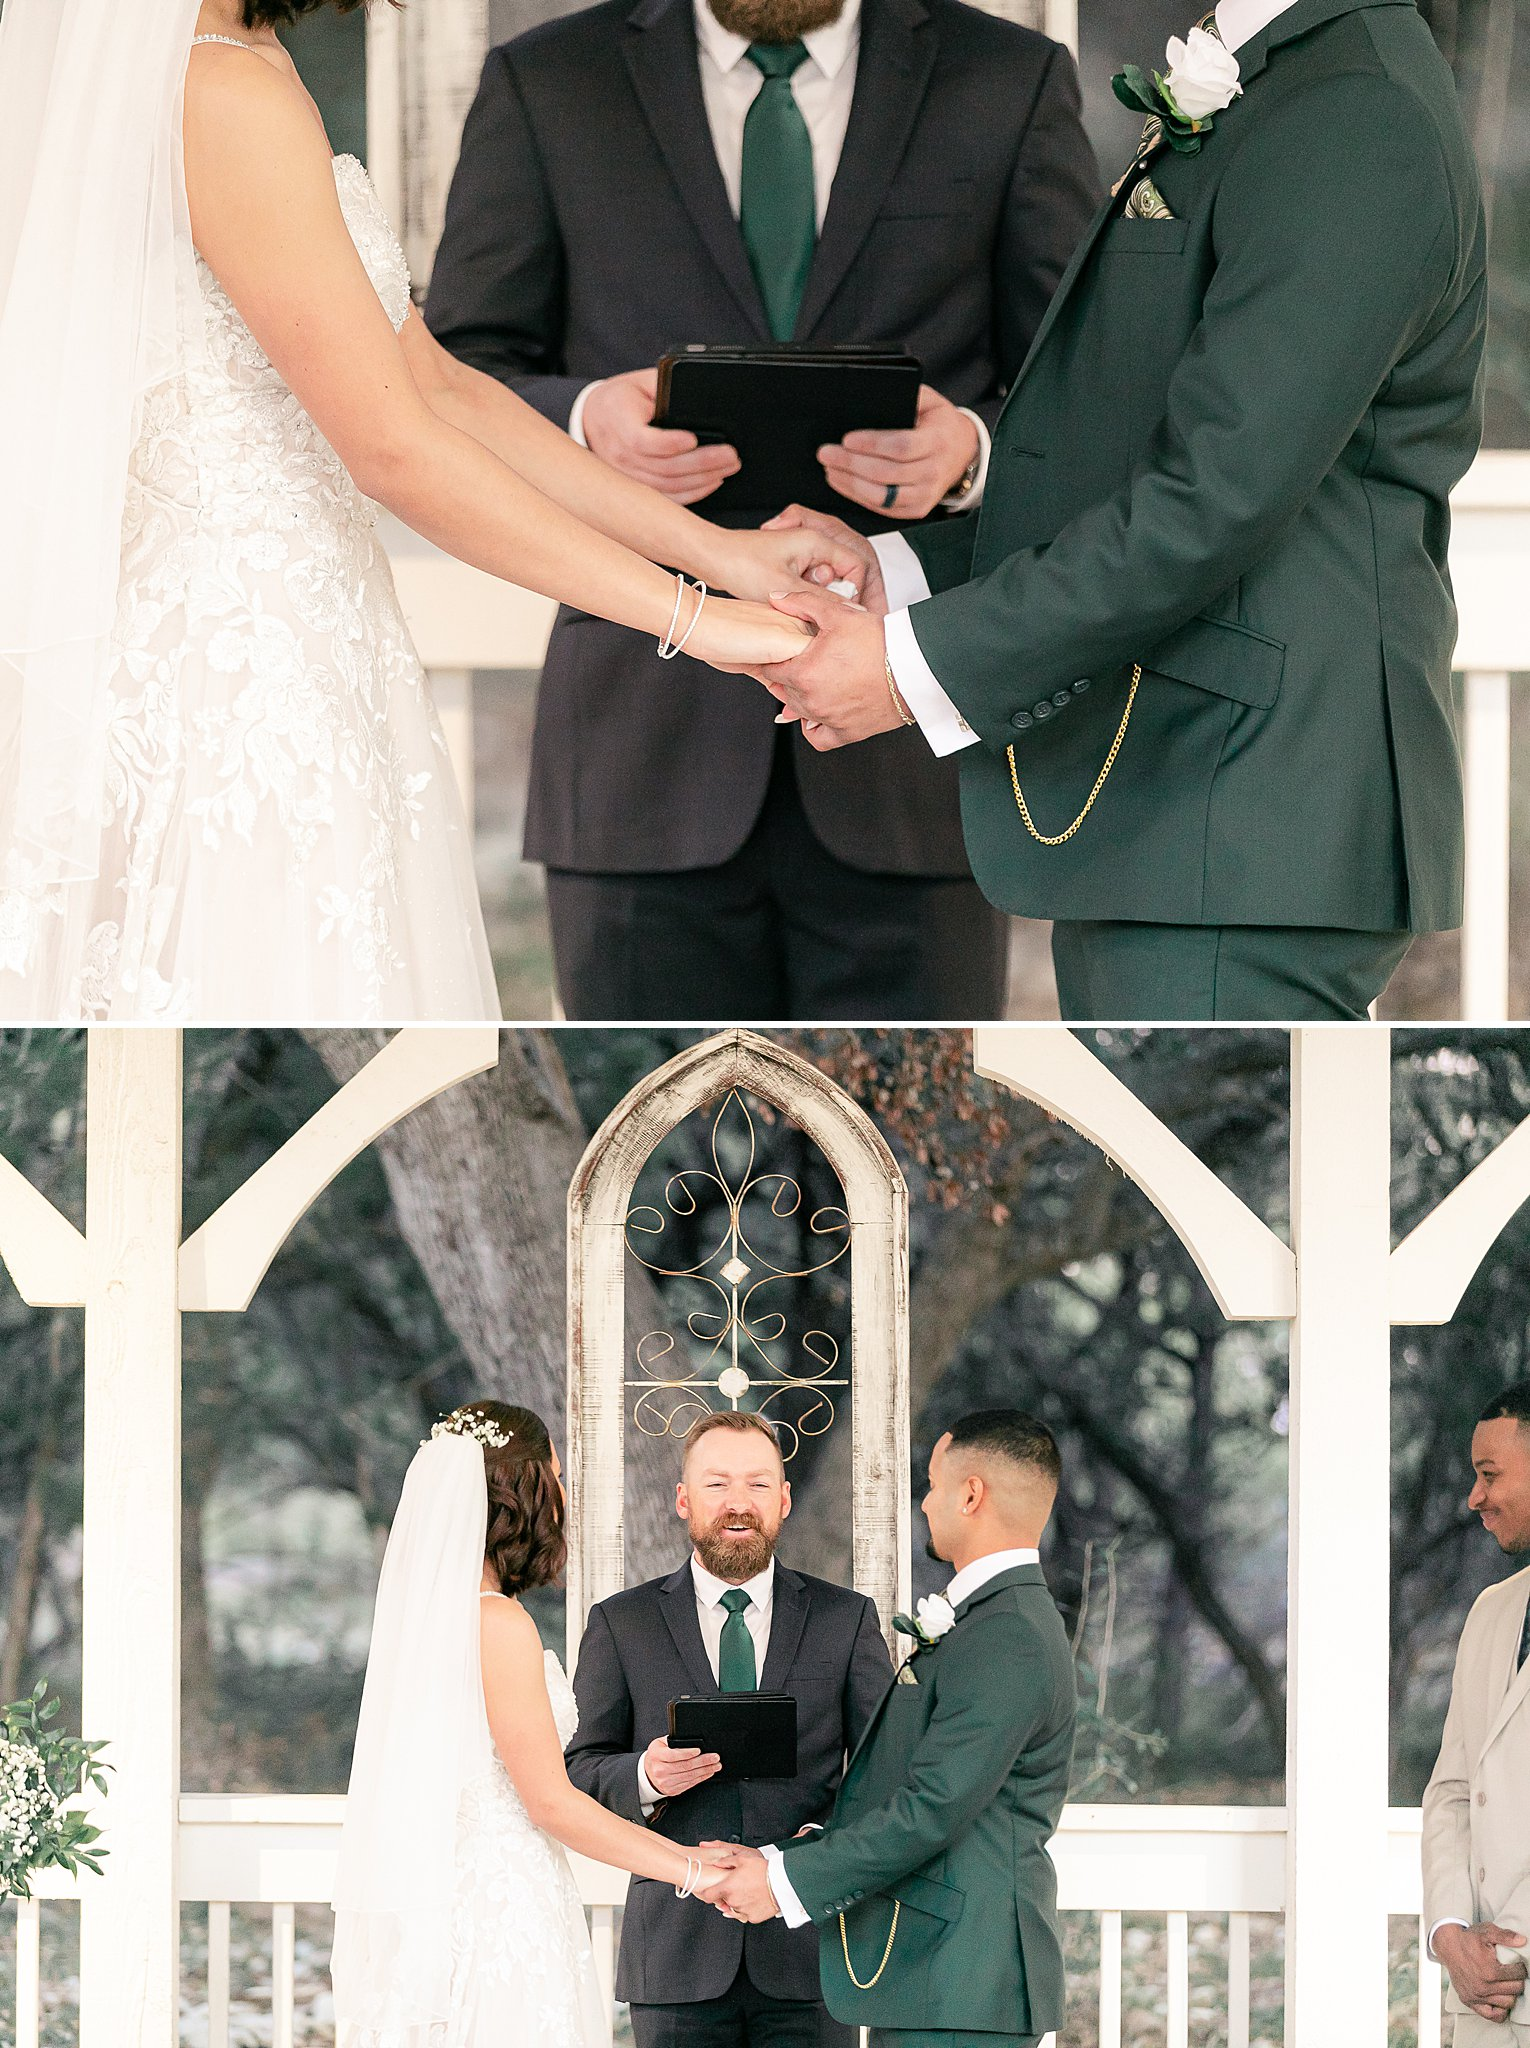 Carly-Barton-Photography-Texas-Wedding-Photographer-Western-Sky-Wedding-Event-Venue-Emerald-Green-Theme_0030.jpg